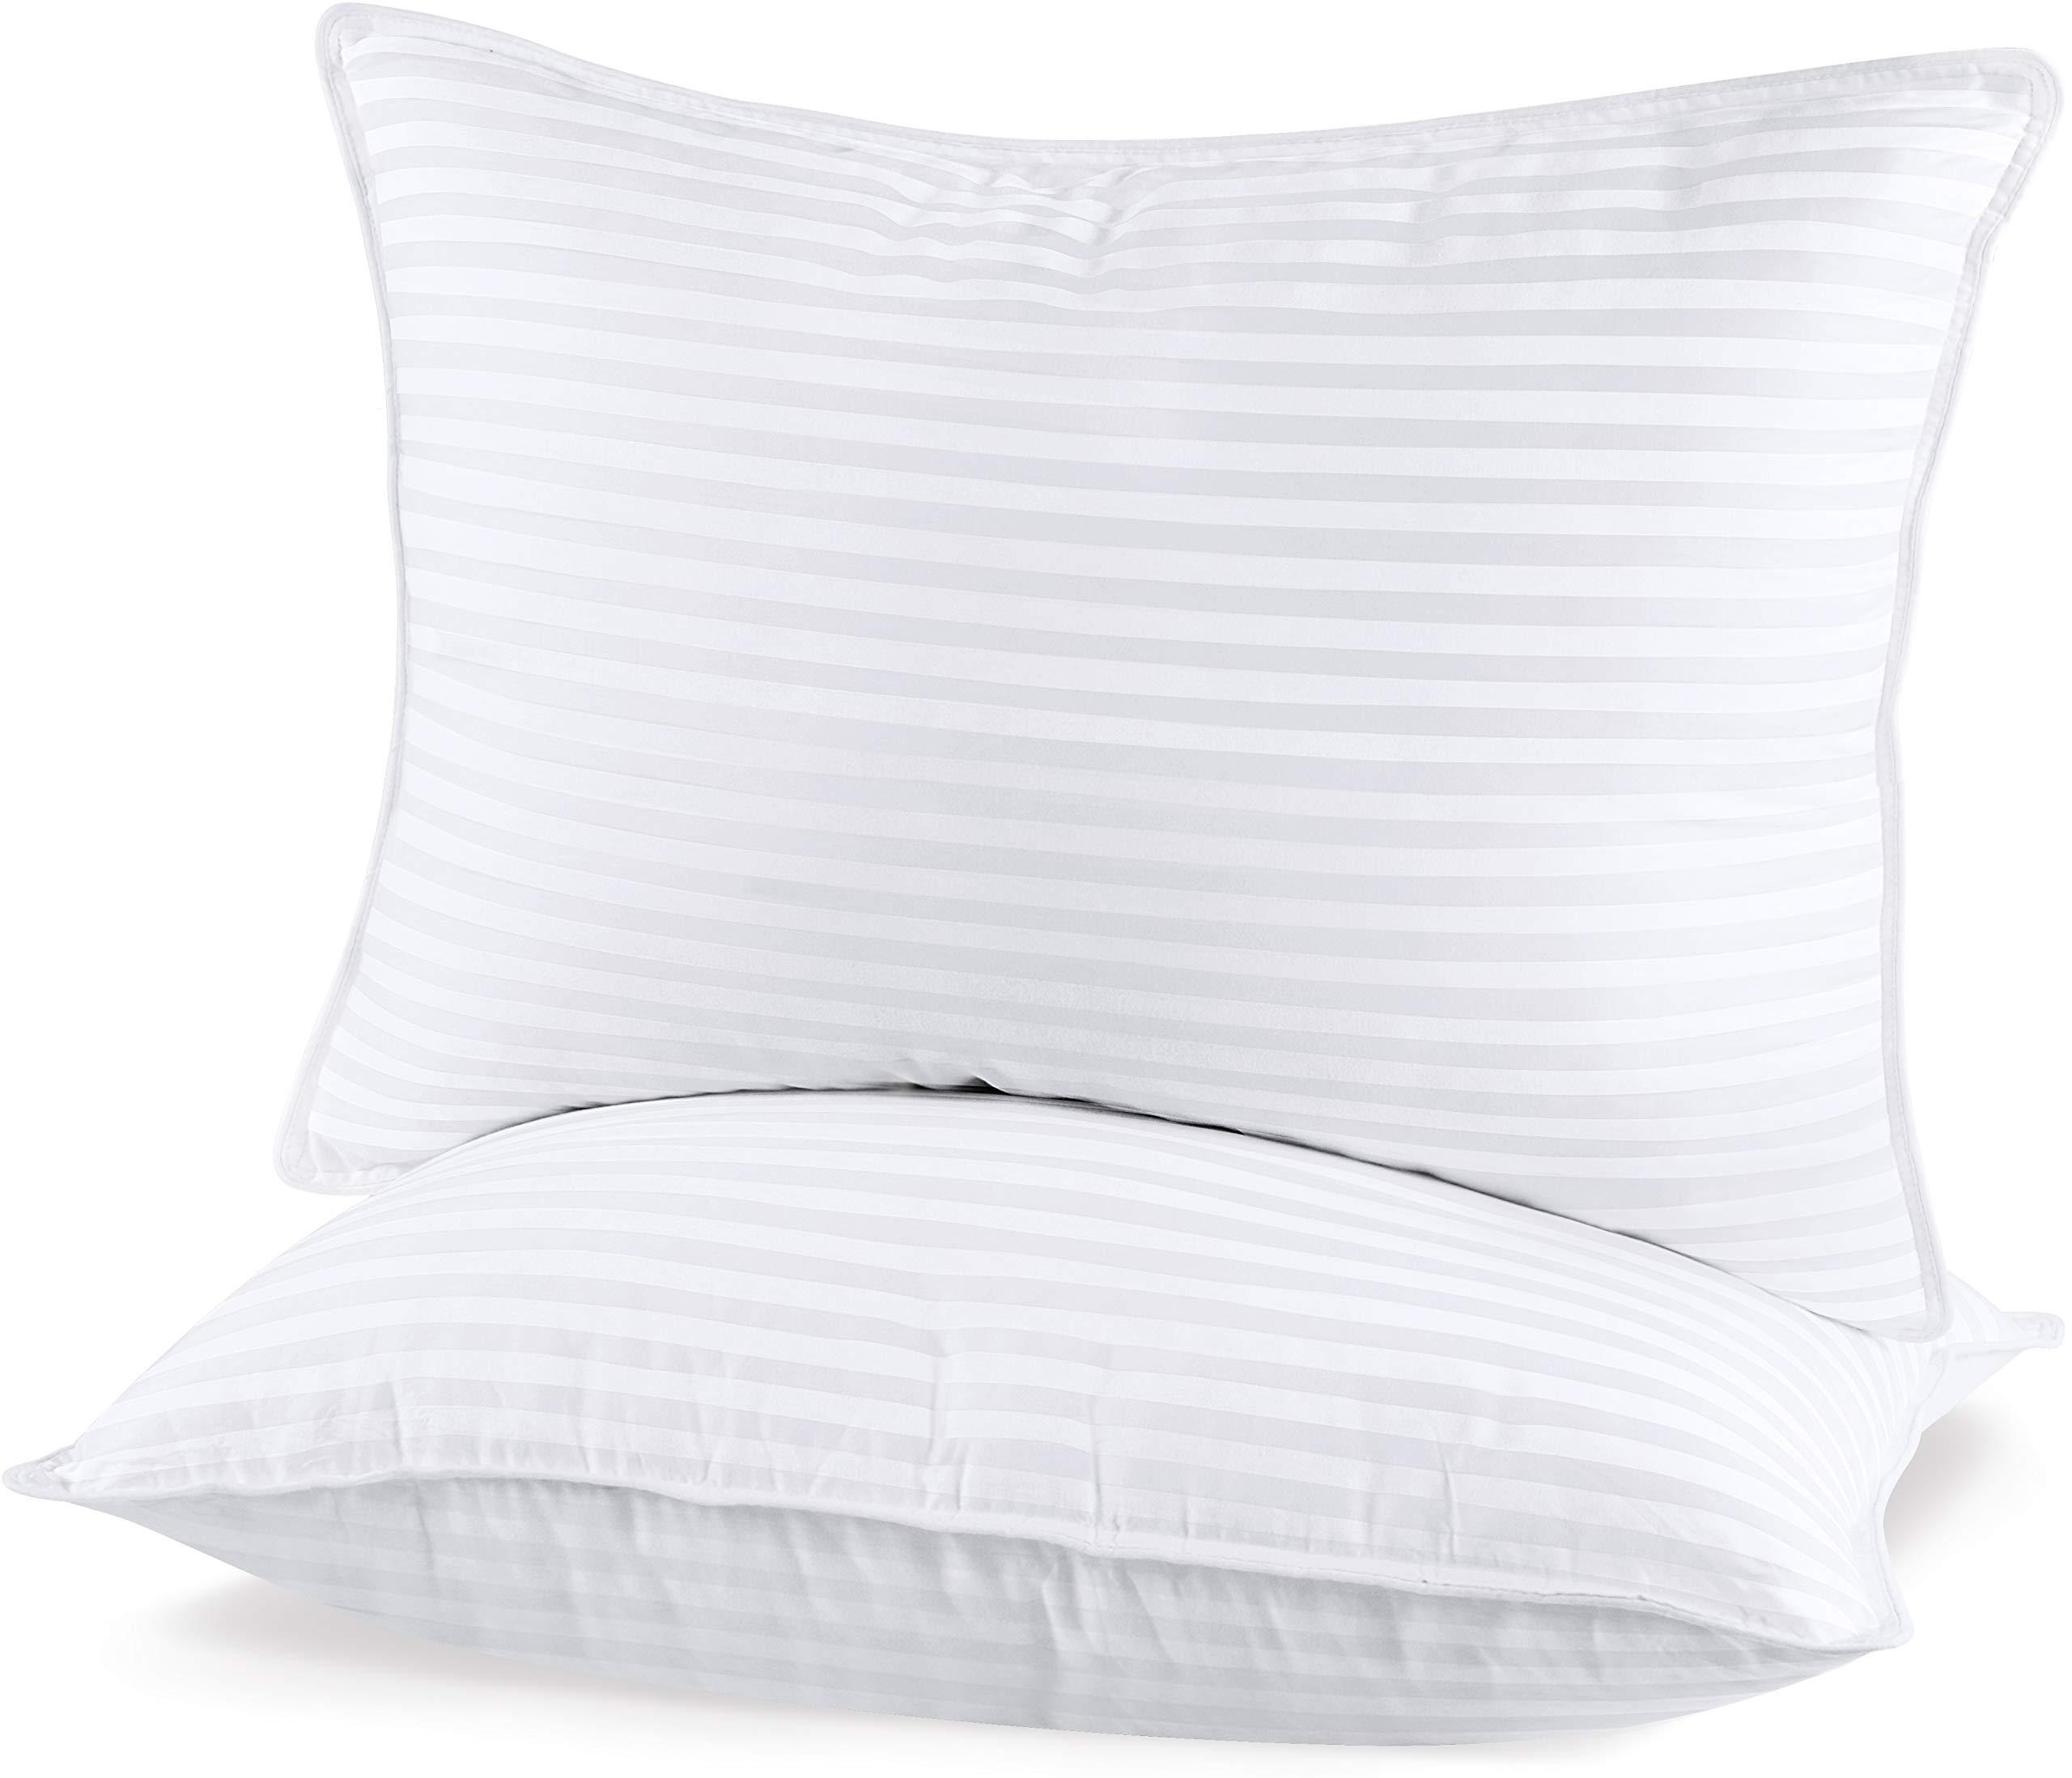 utopia bedding 2 pack premium plush pillow fiber filled bed pillows queen size 20 x 28 inches cotton pillows for sleeping fluffy and soft